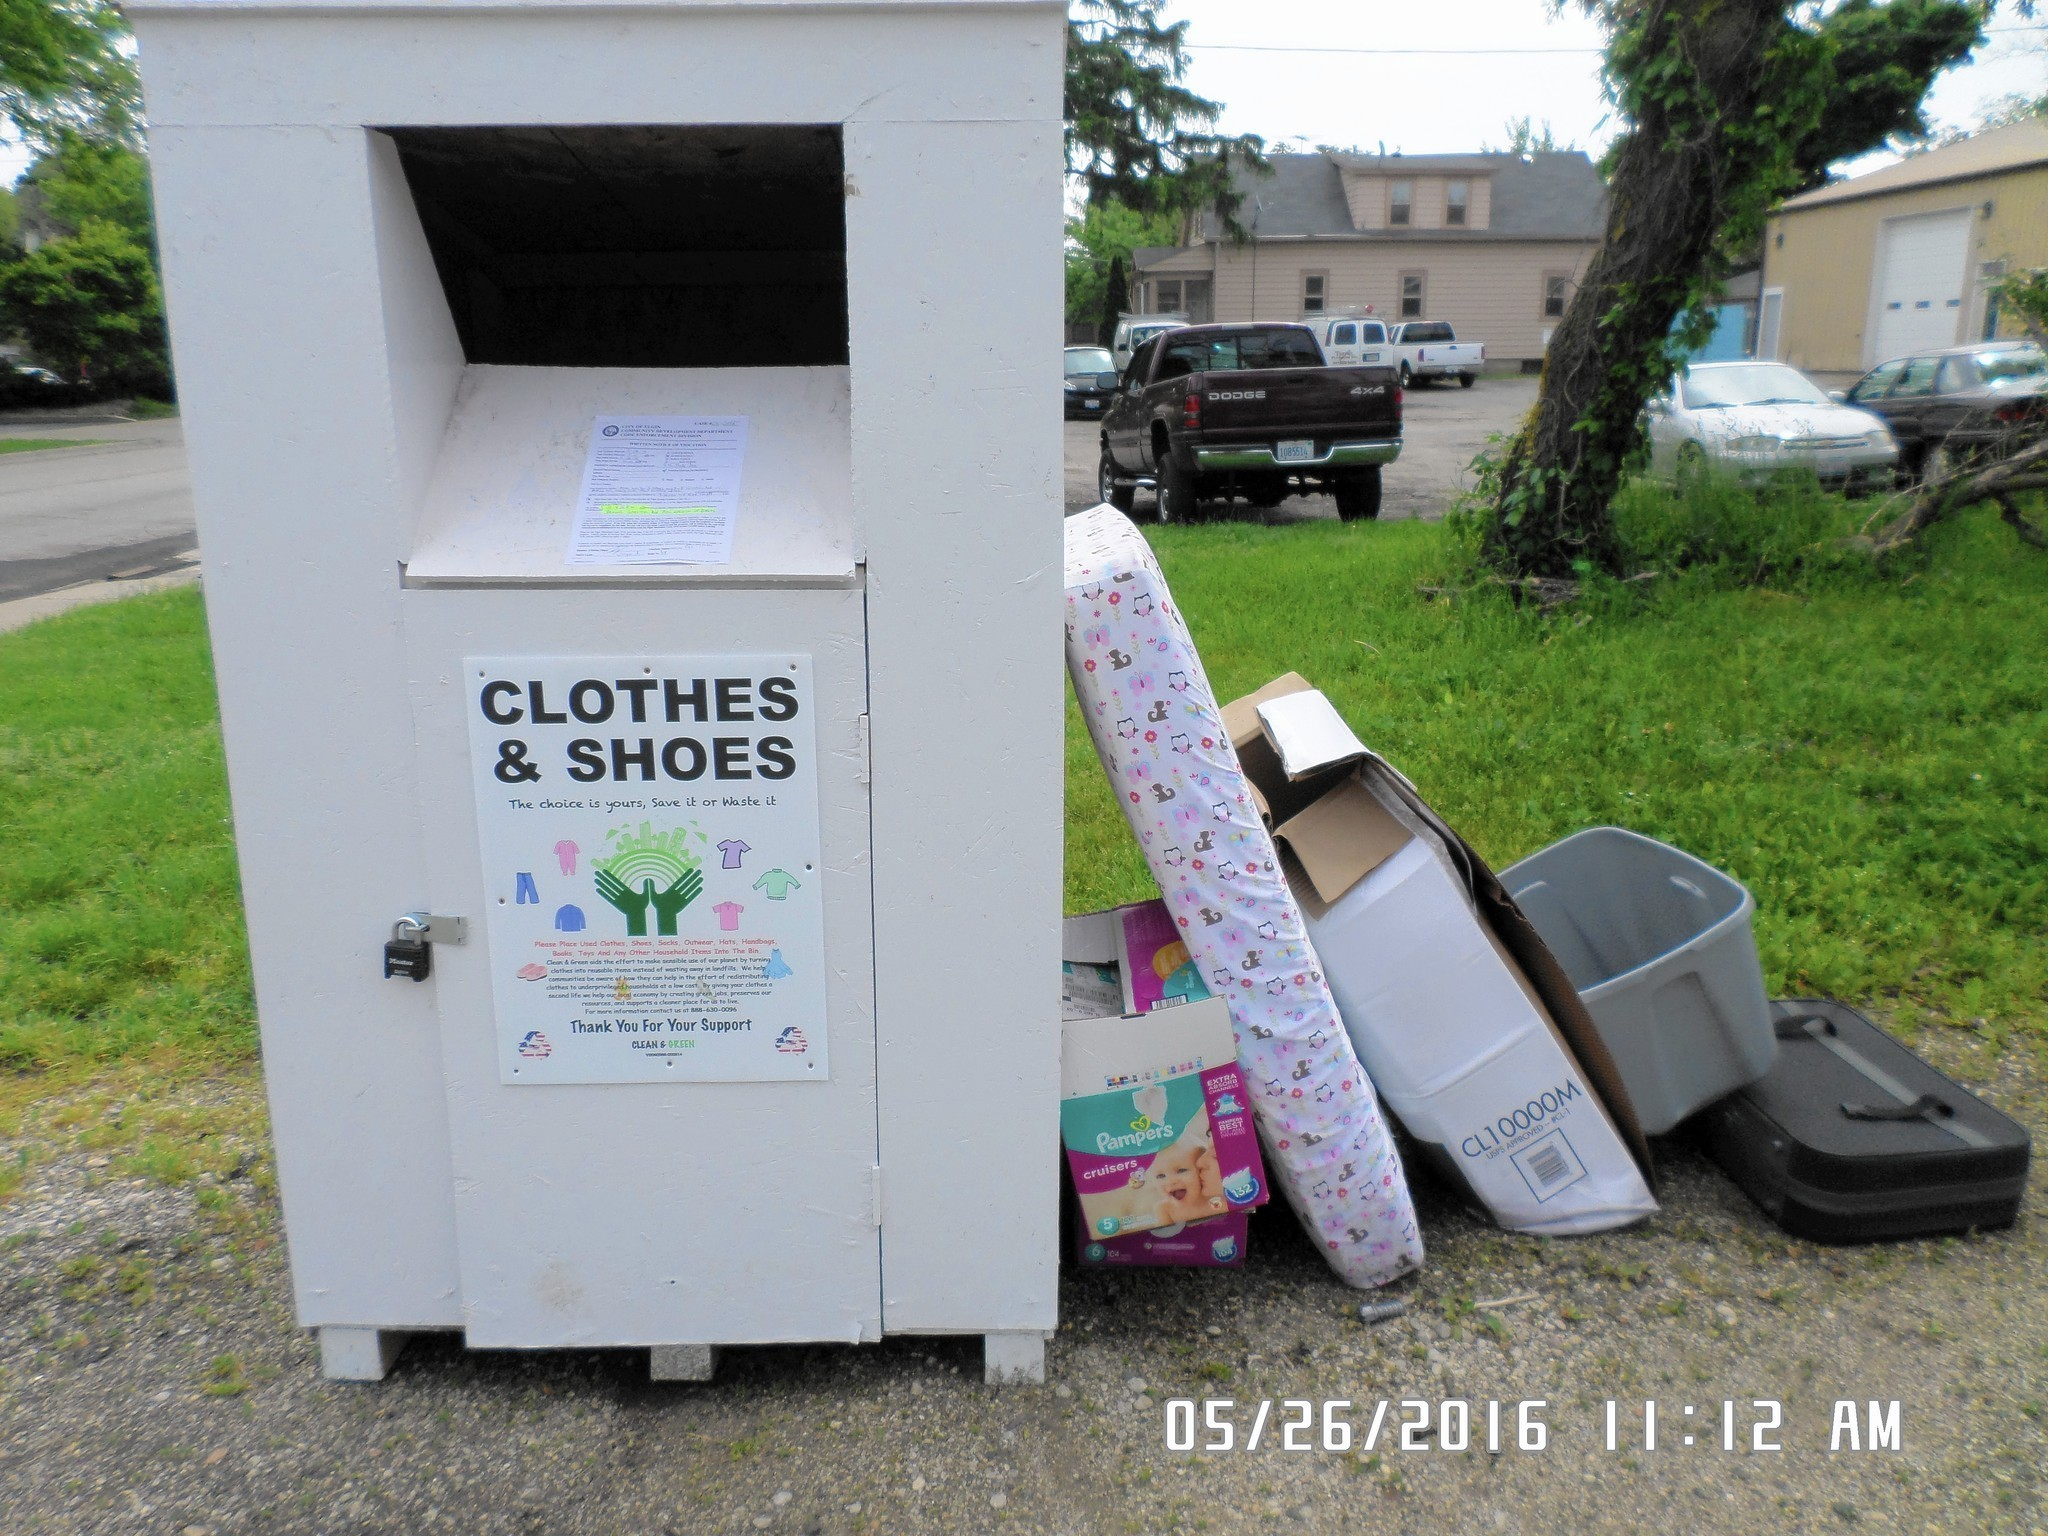 Elgin Sees Rash Of Mystery Donation Bins Left Across City